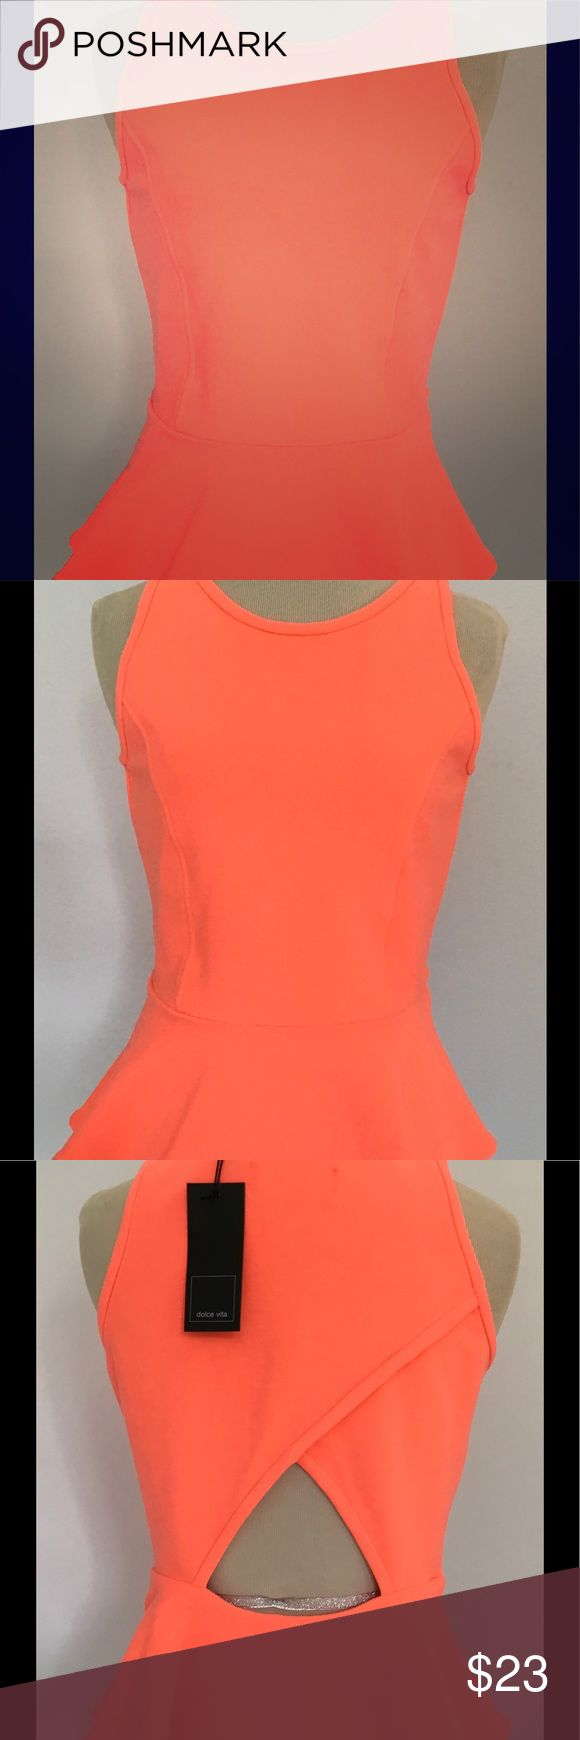 """Dolce Vita Hyla Ponte Peplum Top Orange Coral S Women's Dolce Vita Hyla Ponte Peplum Top in Coral Size S. Brand new condition. Simply gorgeous! Armpit to armpit = 16""""  Overall Length from shoulder = 21"""" Length from waist 6"""" Smoke free! Dolce Vita Tops Tunics"""